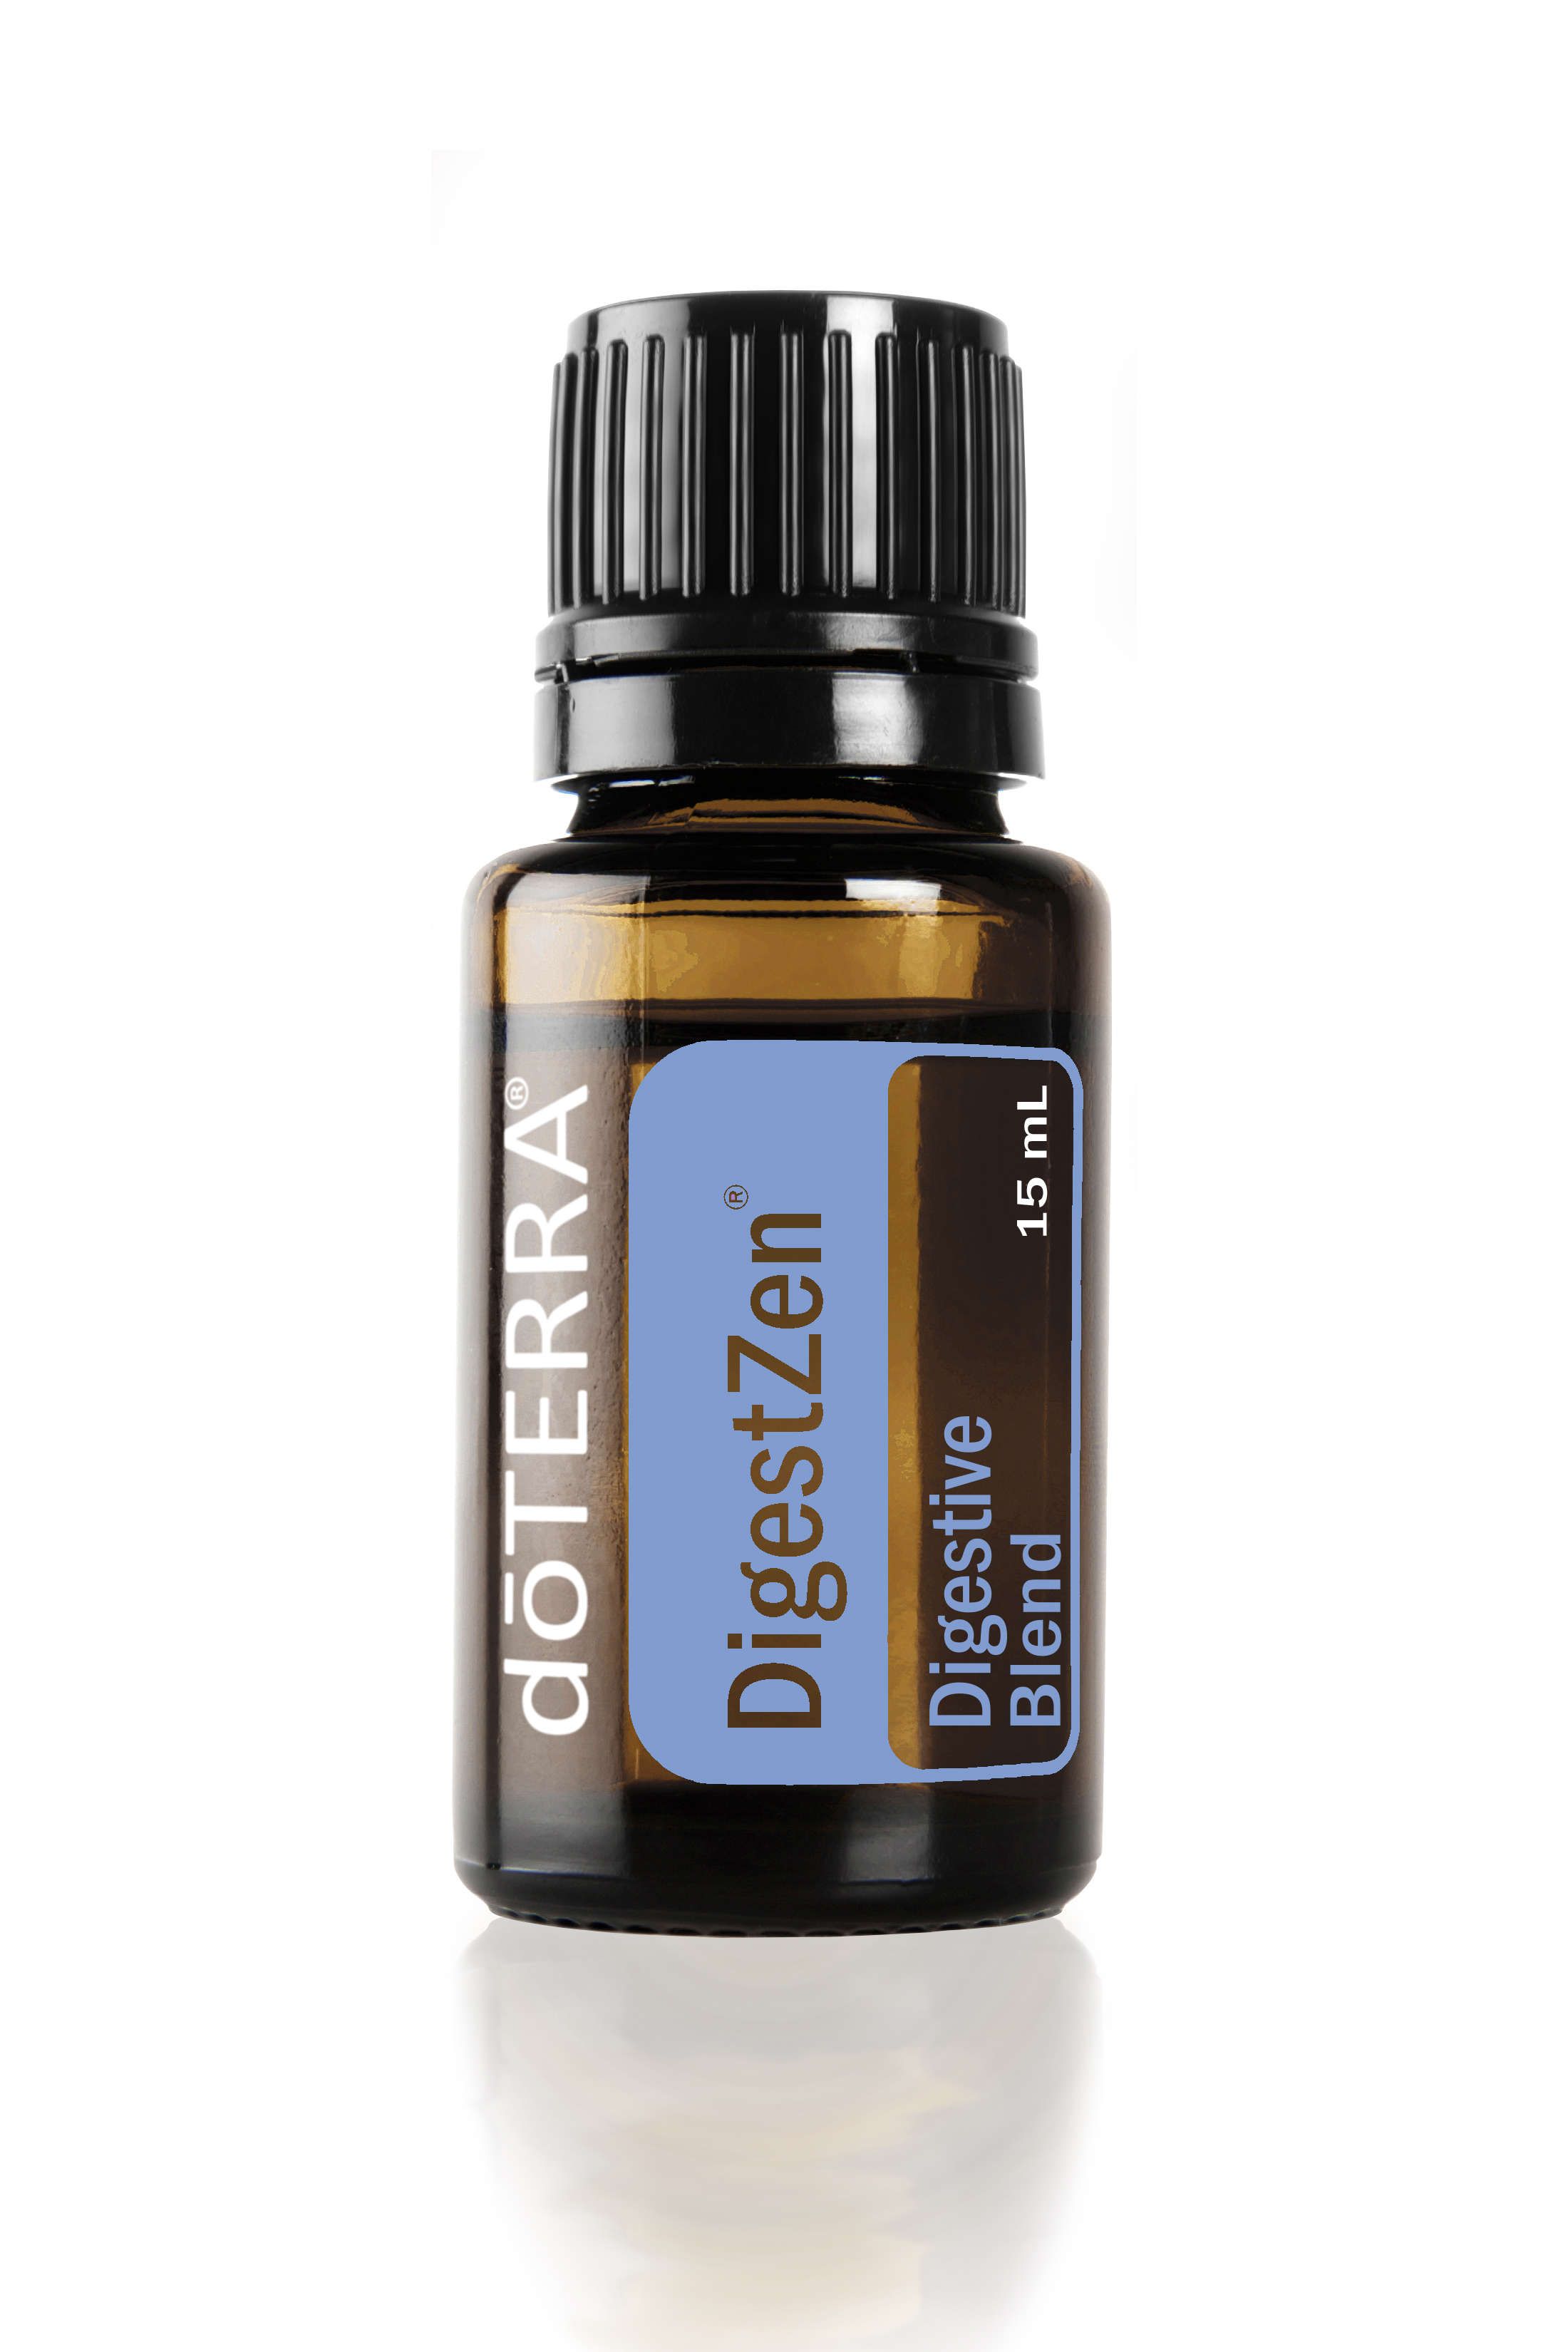 "Digestzen - Your Tummy Tamer - Digestive Essential Oil Blend is known as the ""tummy tamer"" blend due to its ability to aid in digestion, soothe stomach upset, and maintain overall digestive health Digestive Essential Oil Blend is great to have on hand when stomach upset occurs and is safe and effective. Digestive Essential Oil Blend is a healthy, natural, and gentle way to soothe an upset stomach or maintain a healthy digestive system.Three Primary benefits of Digestive Essential Oil Blend 1. Aids in the digestion of foods 2. Soothes occasional stomach upset 3. Maintains a healthy gastrointestinal tractUses for Digestive Essential Oil Blend 1. Add a few drops to water to take internally or rub on the stomach before flying or taking a road trip for a calming aroma. 2. Have Digestive Essential Oil Blend on hand when enjoying heavy holiday meals to promote digestion. 3. Take Digestive Essential Oil Blend with you when traveling or trying new foods to soothe occasional stomach upset.  4. Add to water or tea to maintain a healthy gastrointestinal tract. 5. When you are suffering with digestive system discomfort, add 2-3 drops to a teaspoon of fractionated coconut oil and massage in abdominal area. 6. During seasonal threats, it is great for promoting clear airways; mix 1-2 drops with a dab of fractionated coconut oil and apply over the sinuses (keep out of your eyes) as needed. 7. If you suffer from morning nausea while you are pregnant, add 2-3 drops to your diffuser and diffuse so you can breathe it in aromatically."